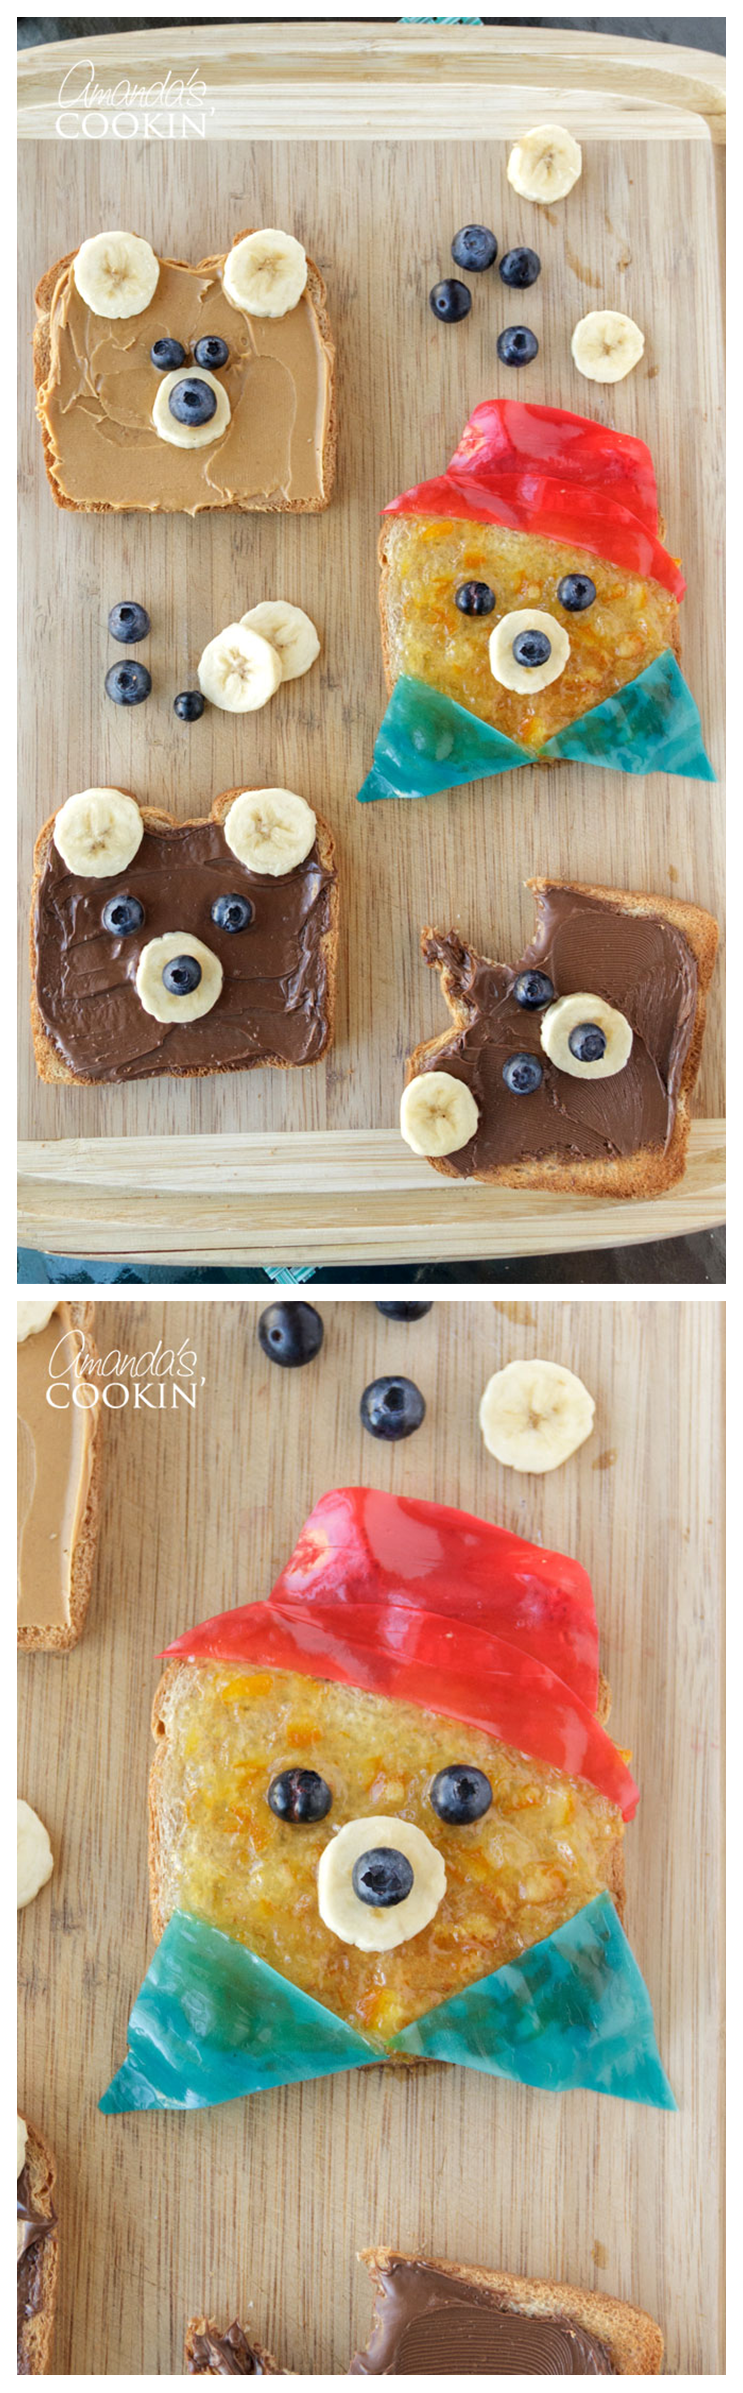 These cute teddy bear toasts by @AmandaFarMaro will surely put a smile on the whole family's face. | Paddington 2 - in theaters now